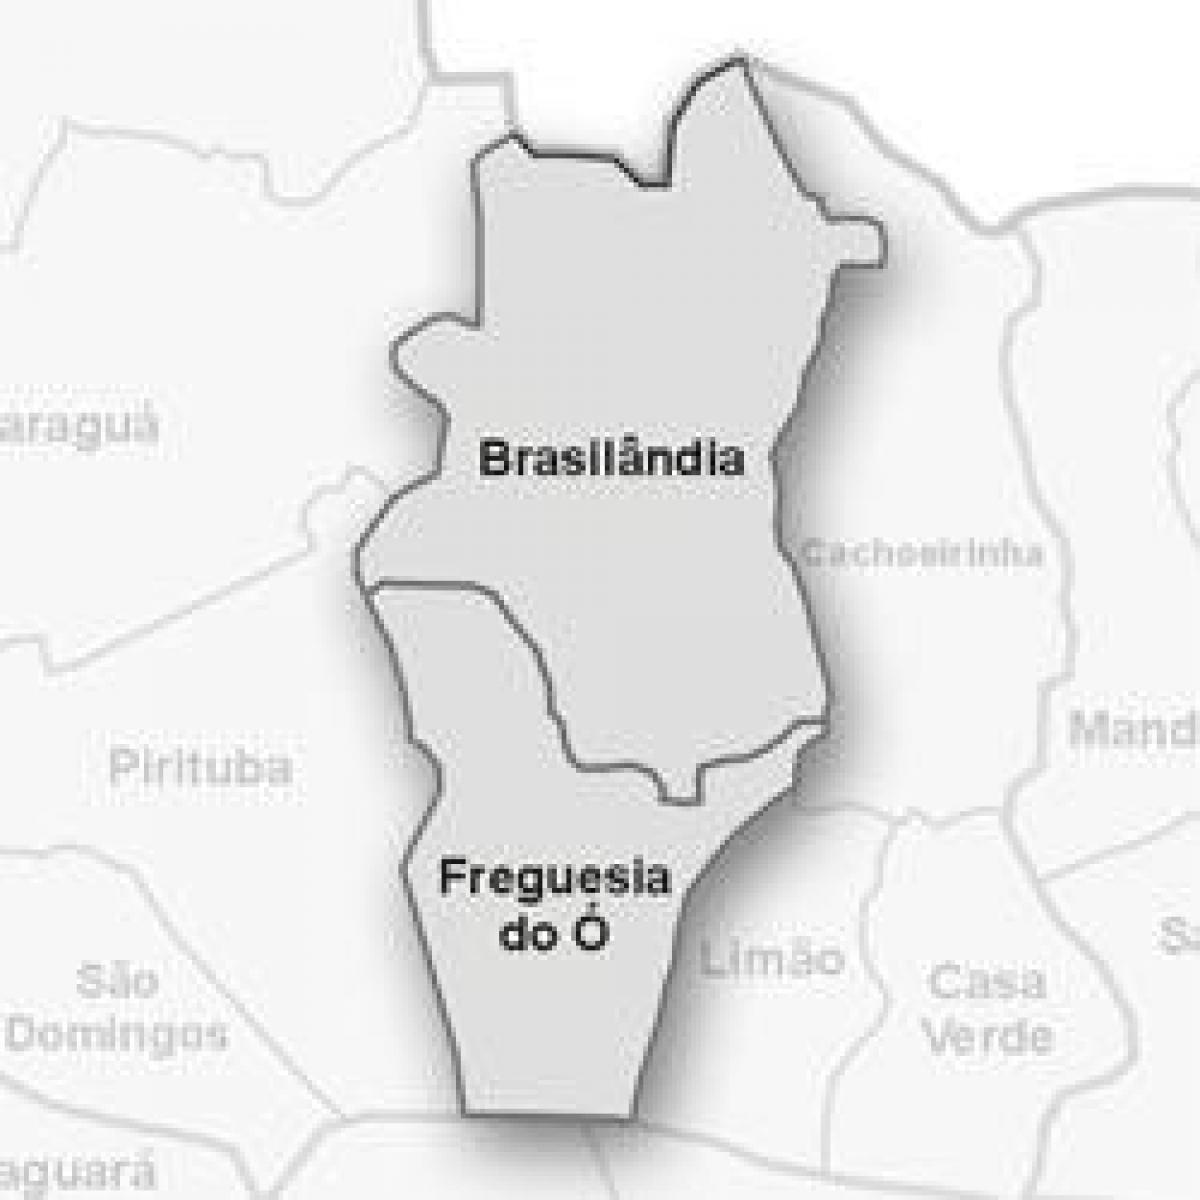 Map of Freguesia do Ó sub-prefecture